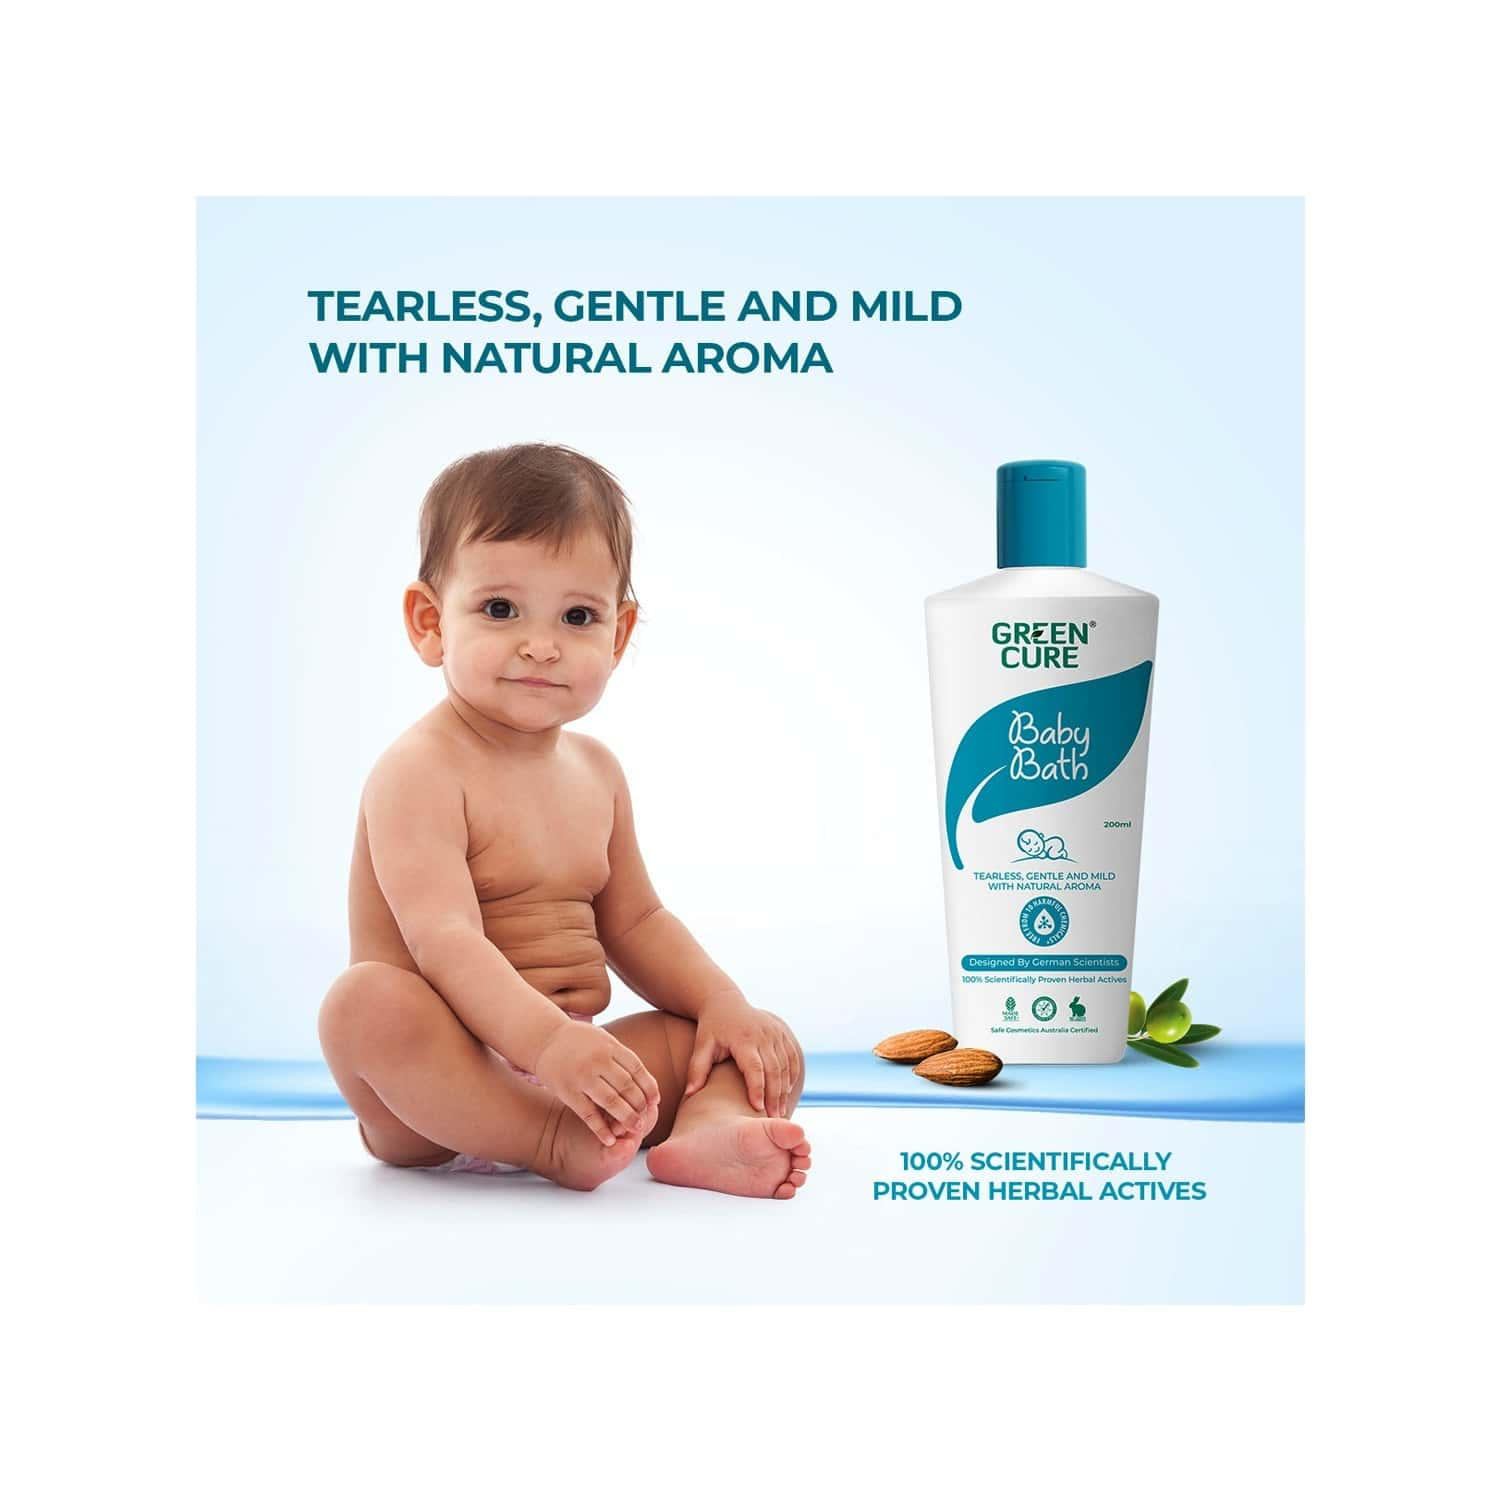 Green Cure Natural Baby Bath Soothing & Gentle For Sensitive Baby Skin - 200ml